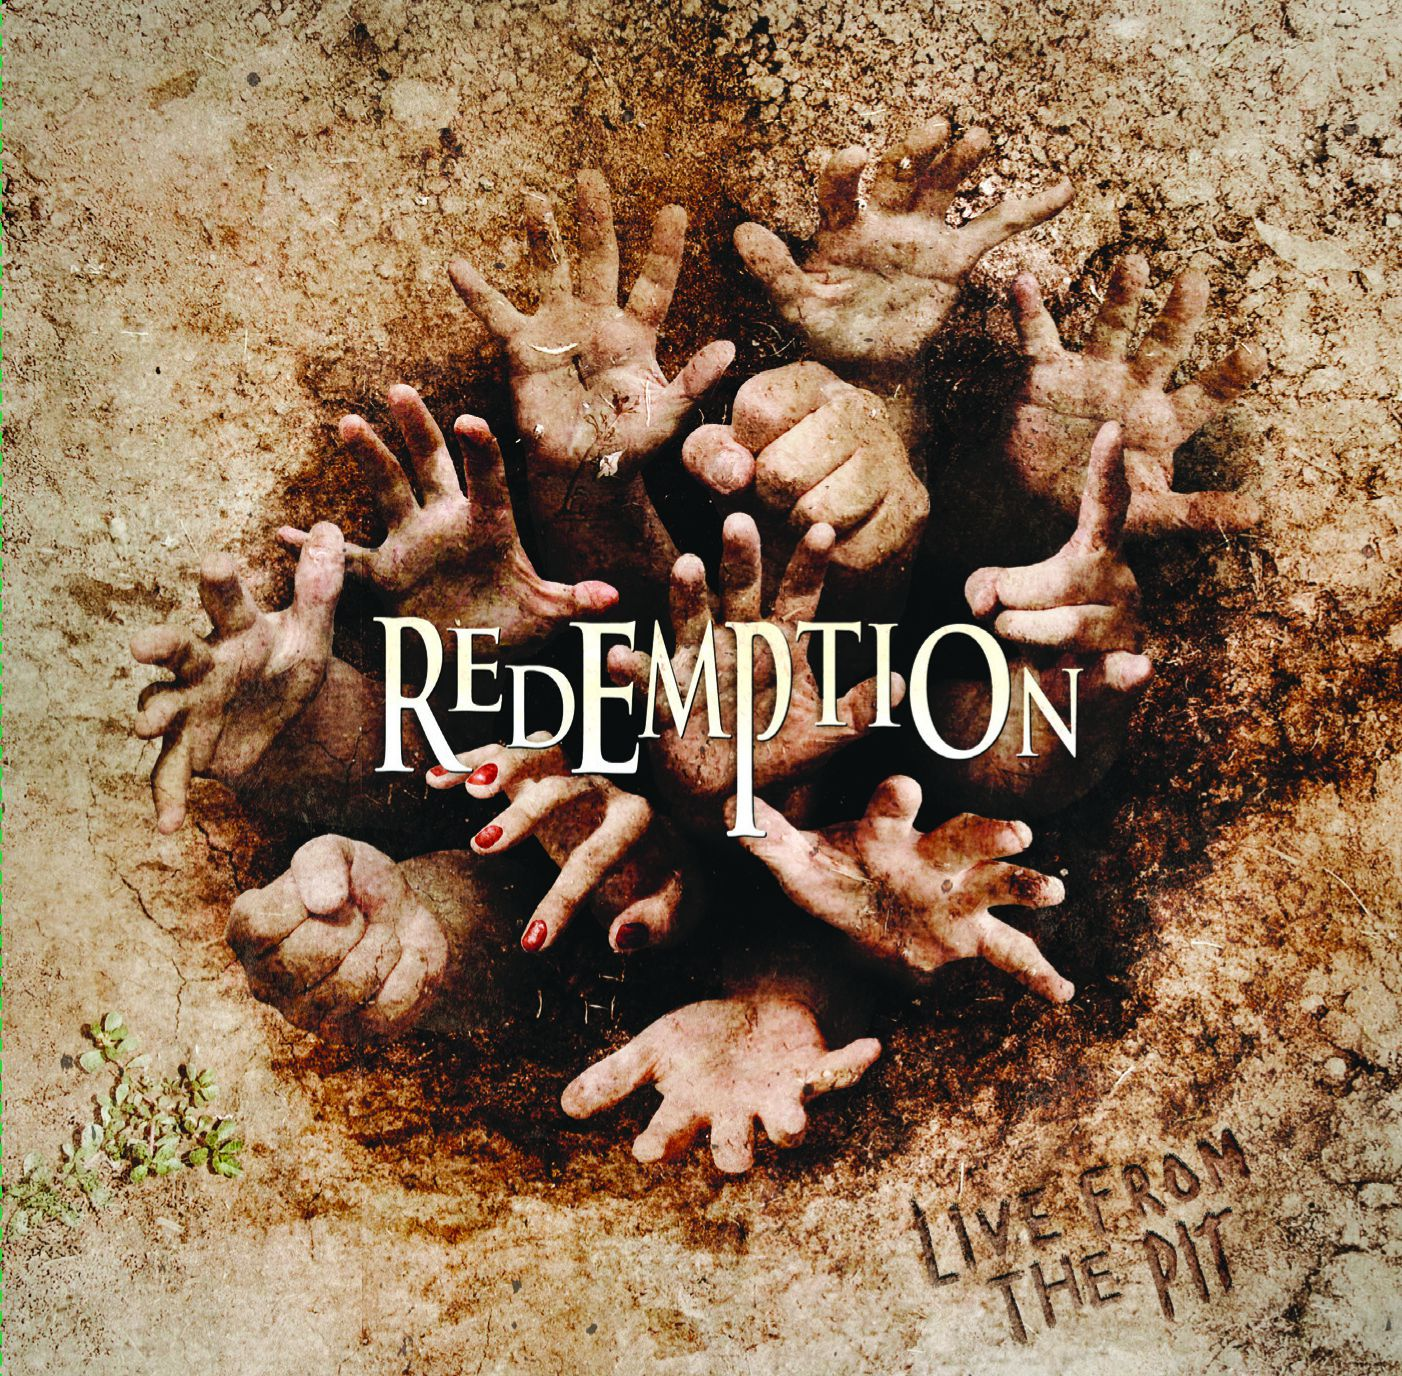 """CD review REDEMPTION """"Live from the pit"""""""